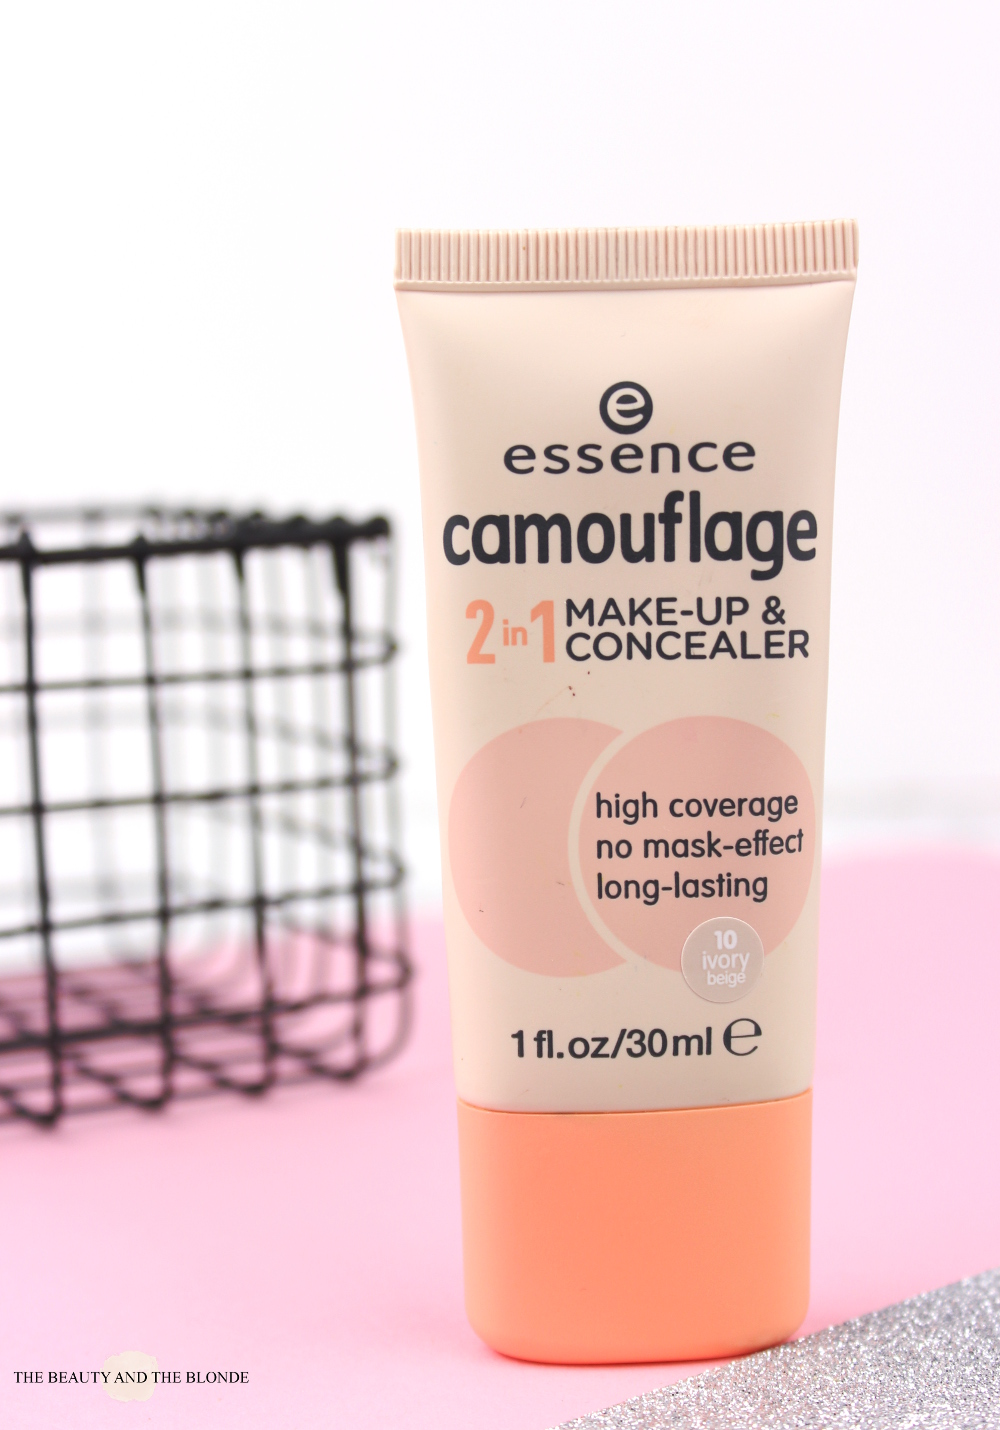 essence Camouflage 2in1 Makeup & Concealer